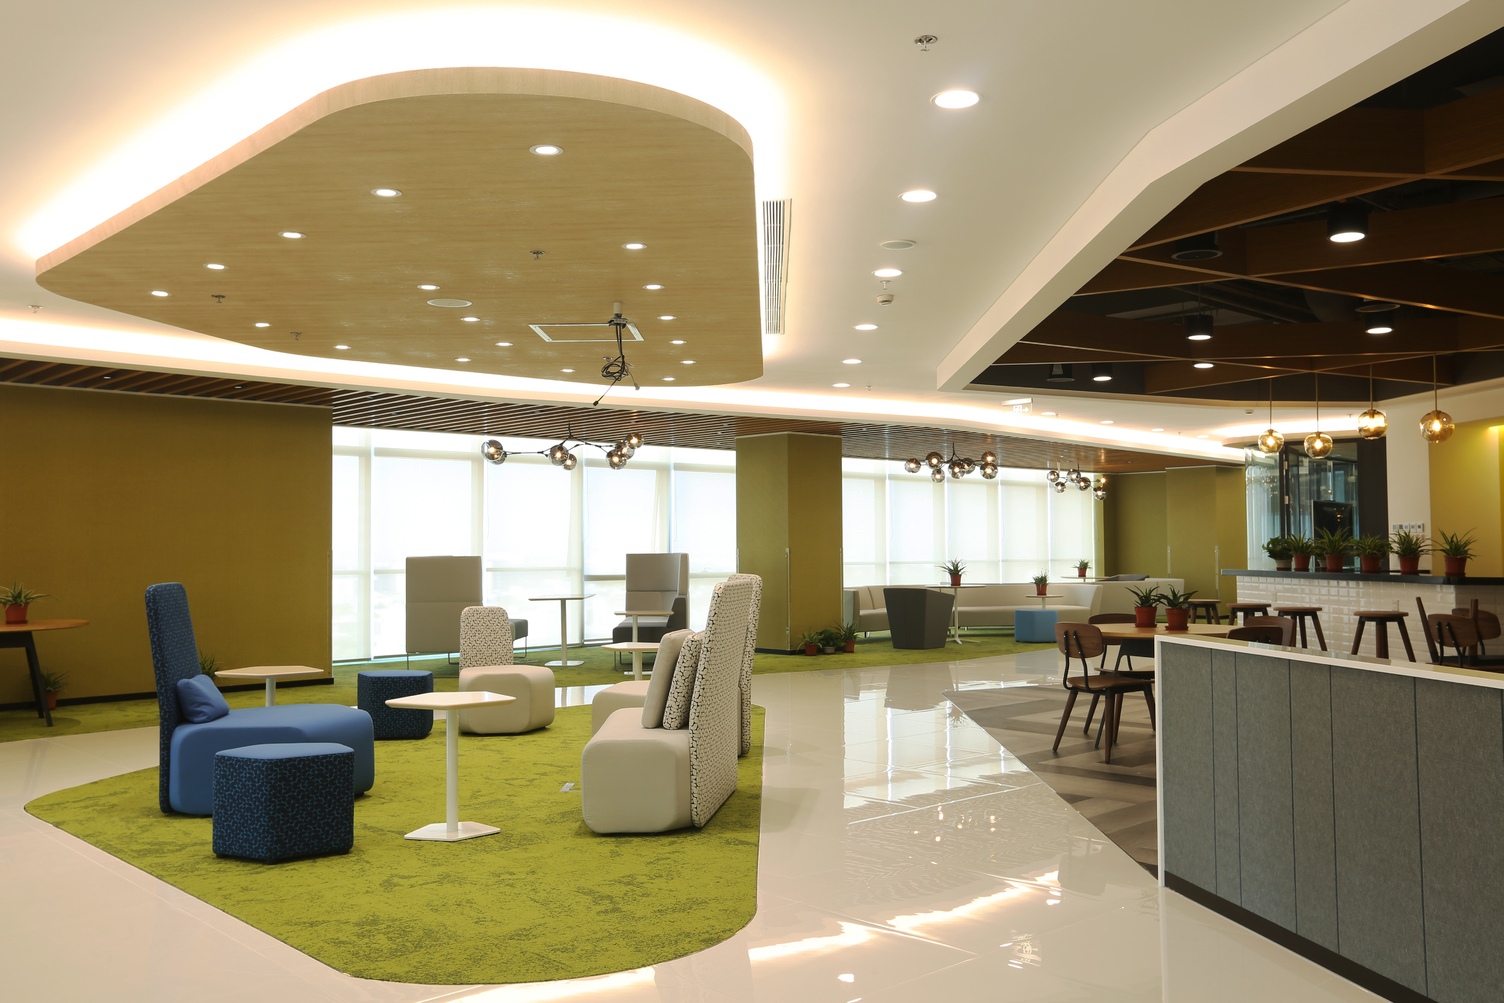 DuPont™ Tedlar™ Wallcoverings were used to protect the walls in the employee lounge and café area at the company Corteva.